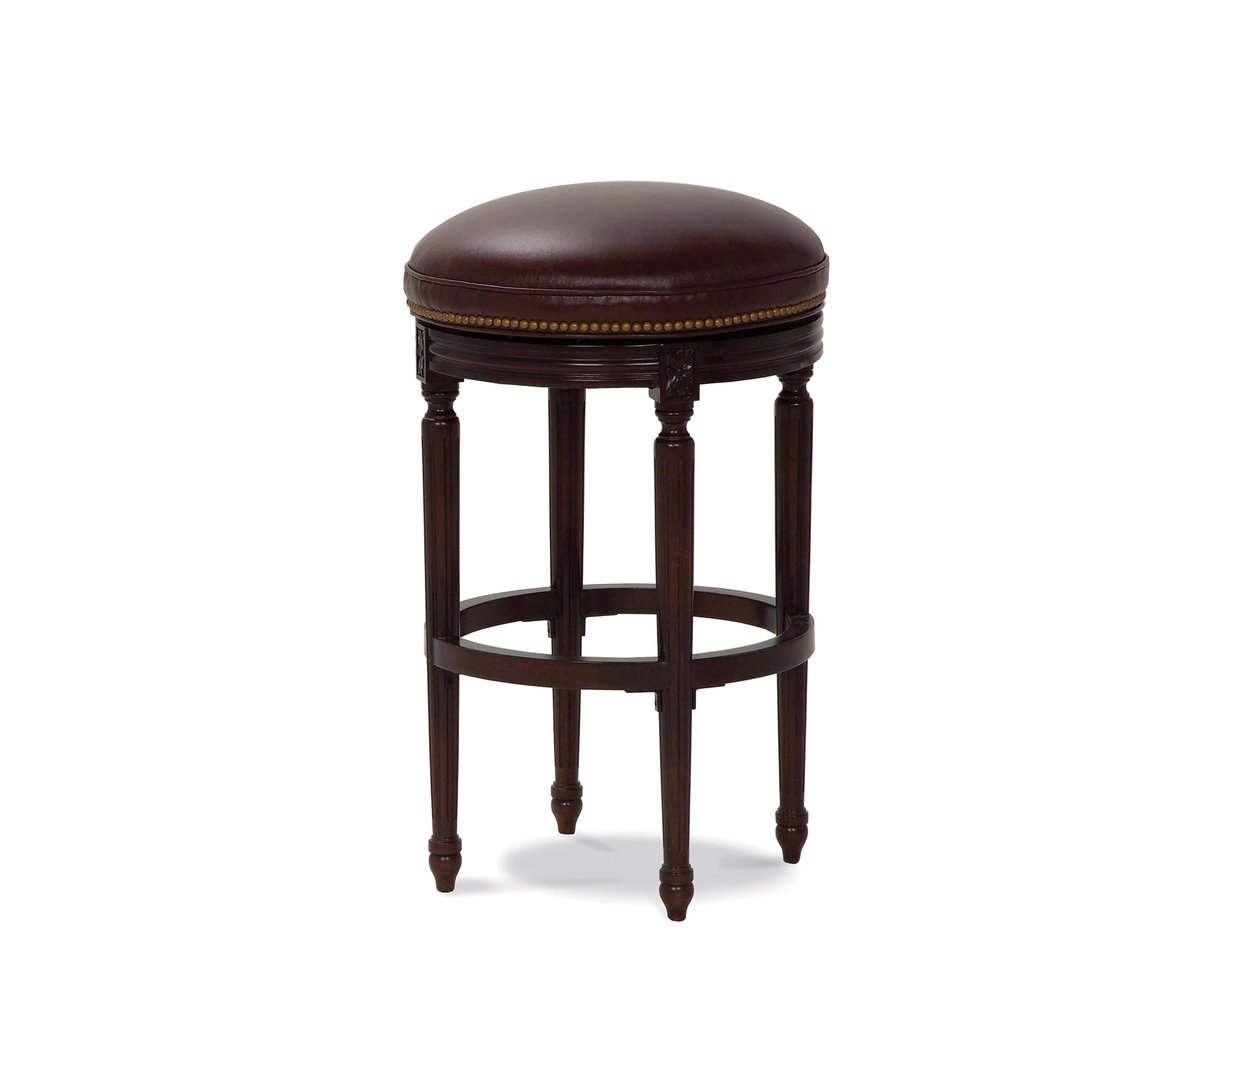 HADLEY BAR STOOL Image